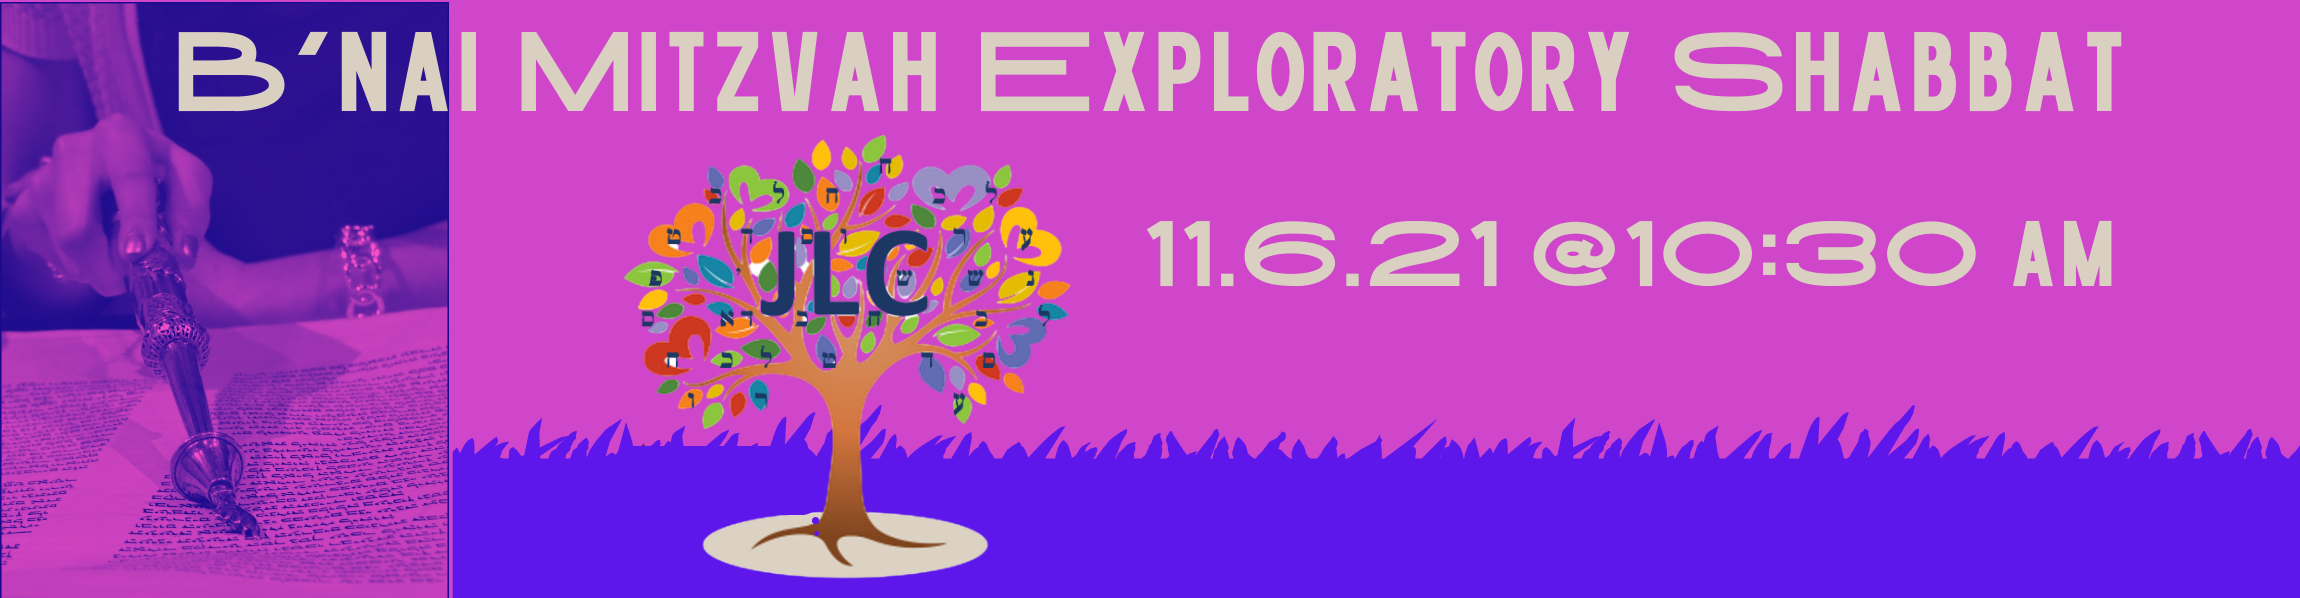 """</a>                                                                                                                                                                                      <a href=""""https://www.templebethelhollywood.org/event/6th/7th-bnai-mitzvah-exploratory-shabbat-service.html"""" class=""""slider_link""""                             target="""""""">                             Learn More                            </a>"""